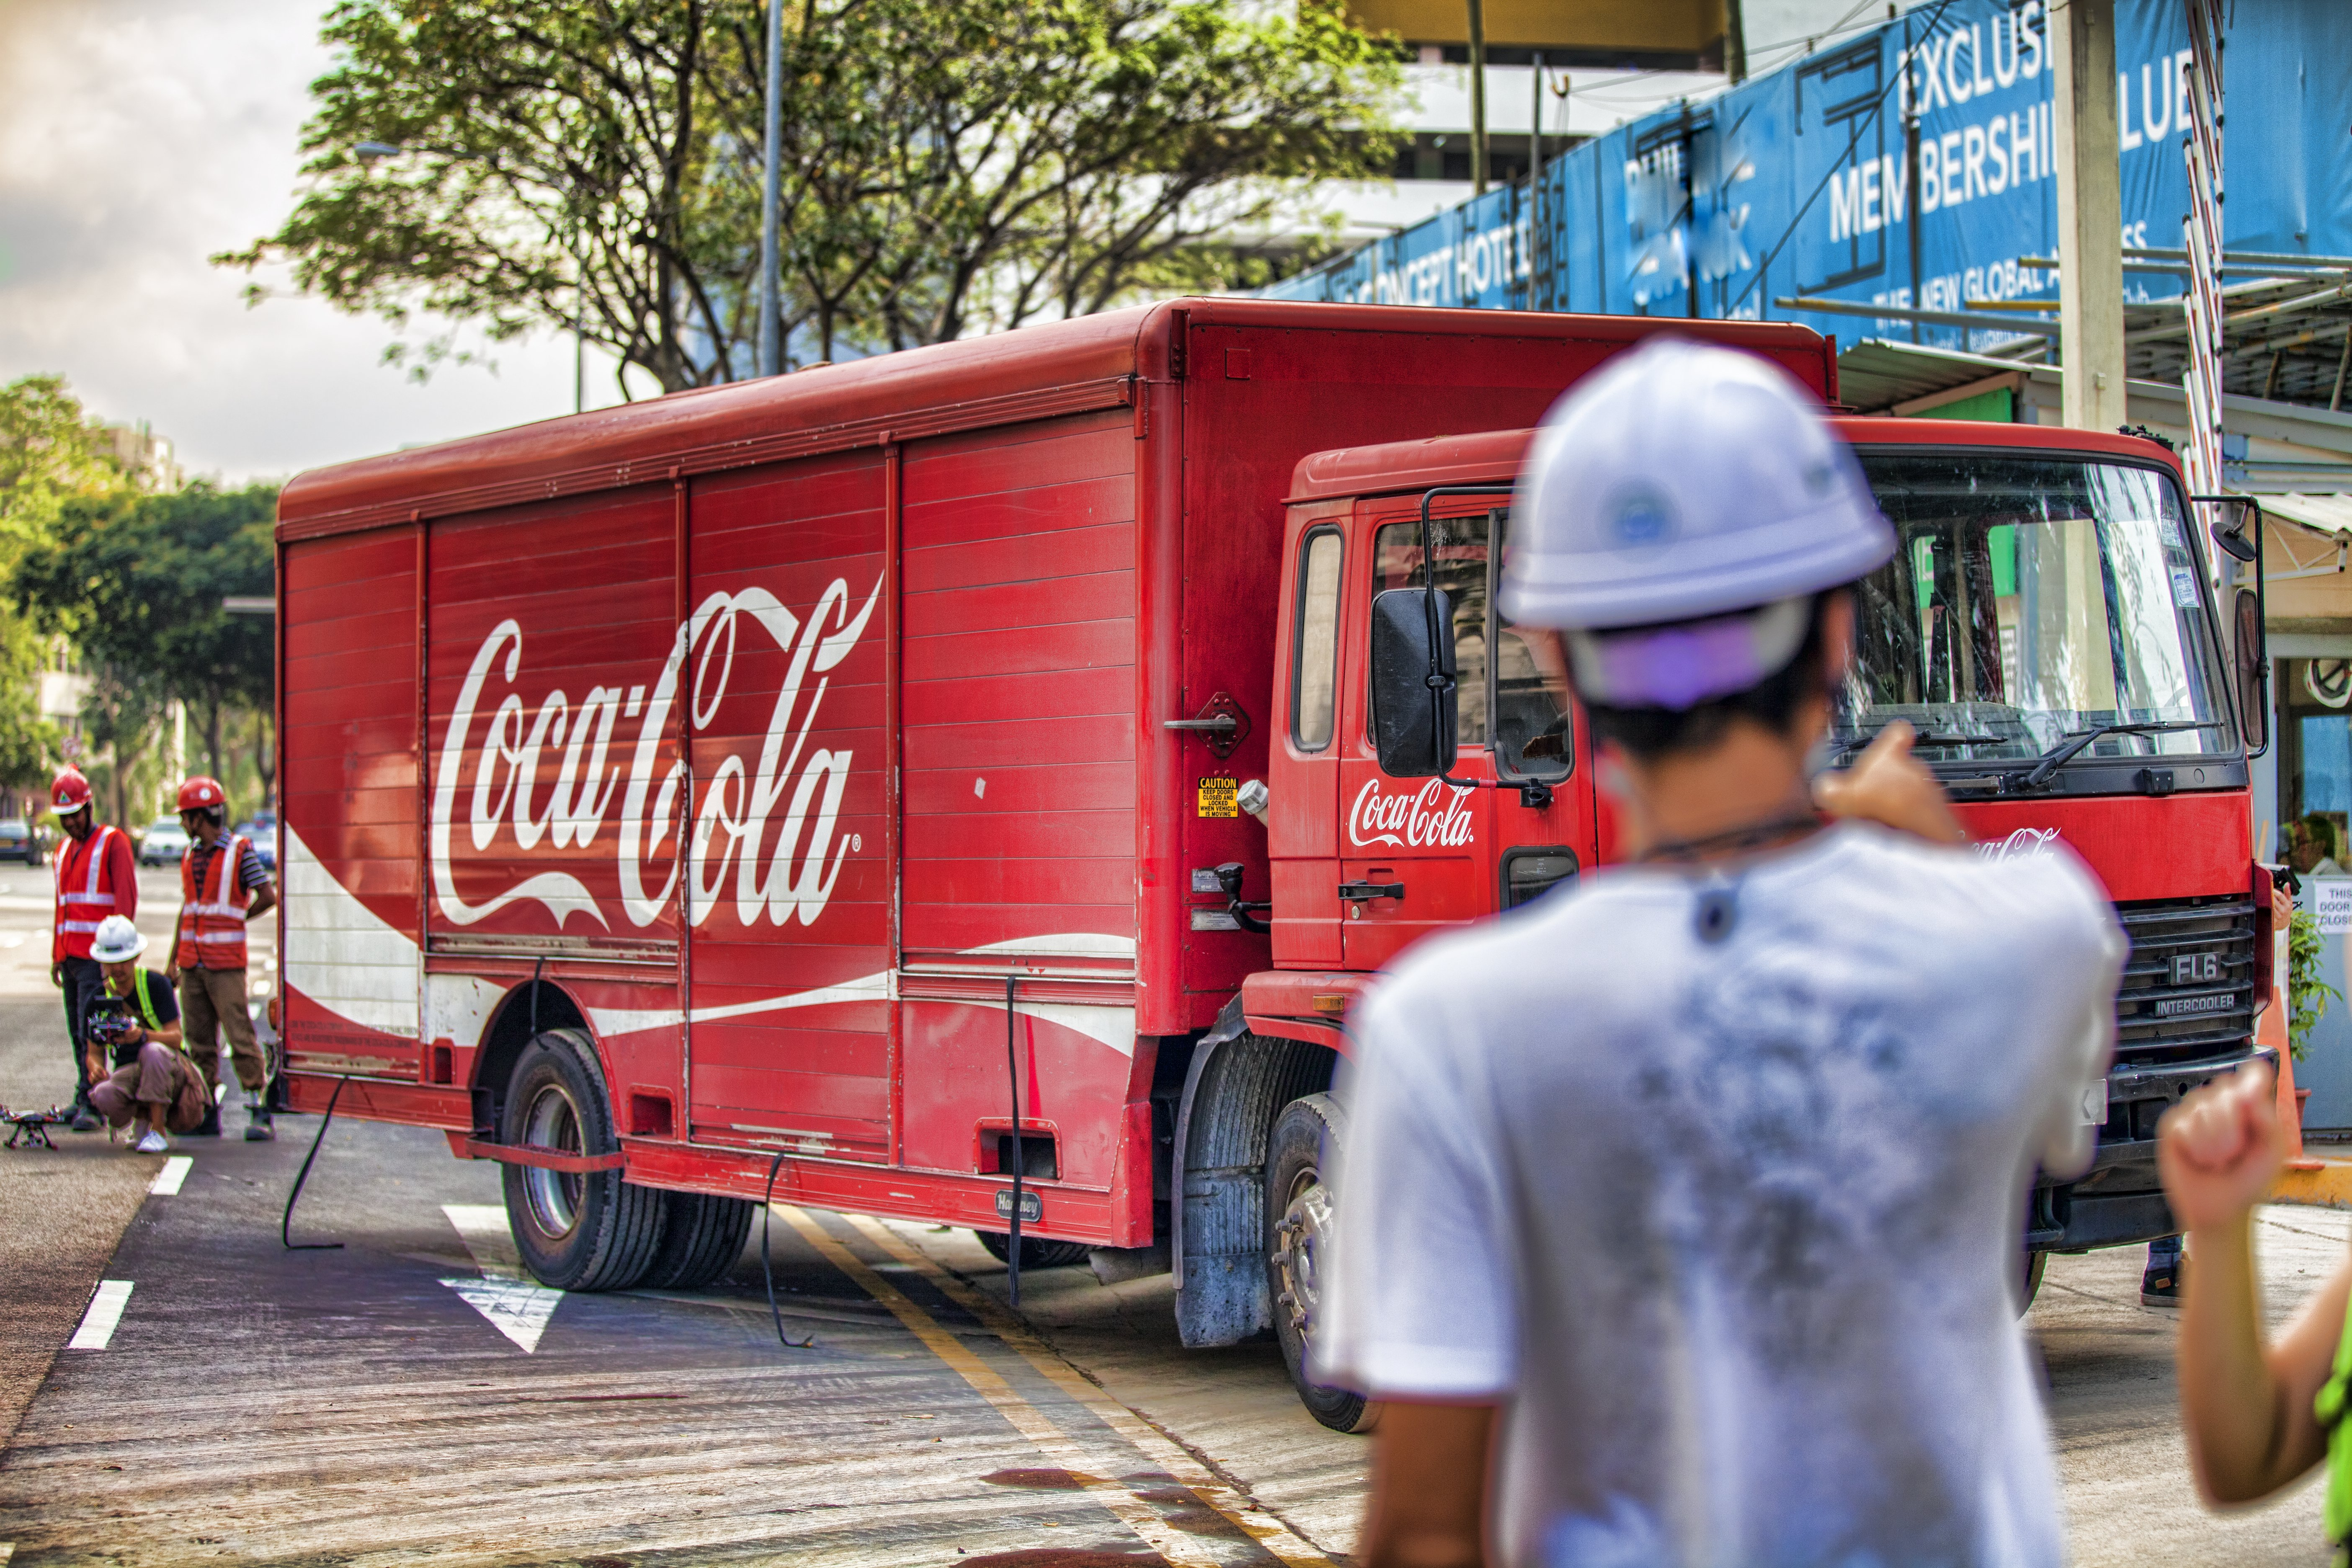 Coca-Cola Truck delivering the Coke cans